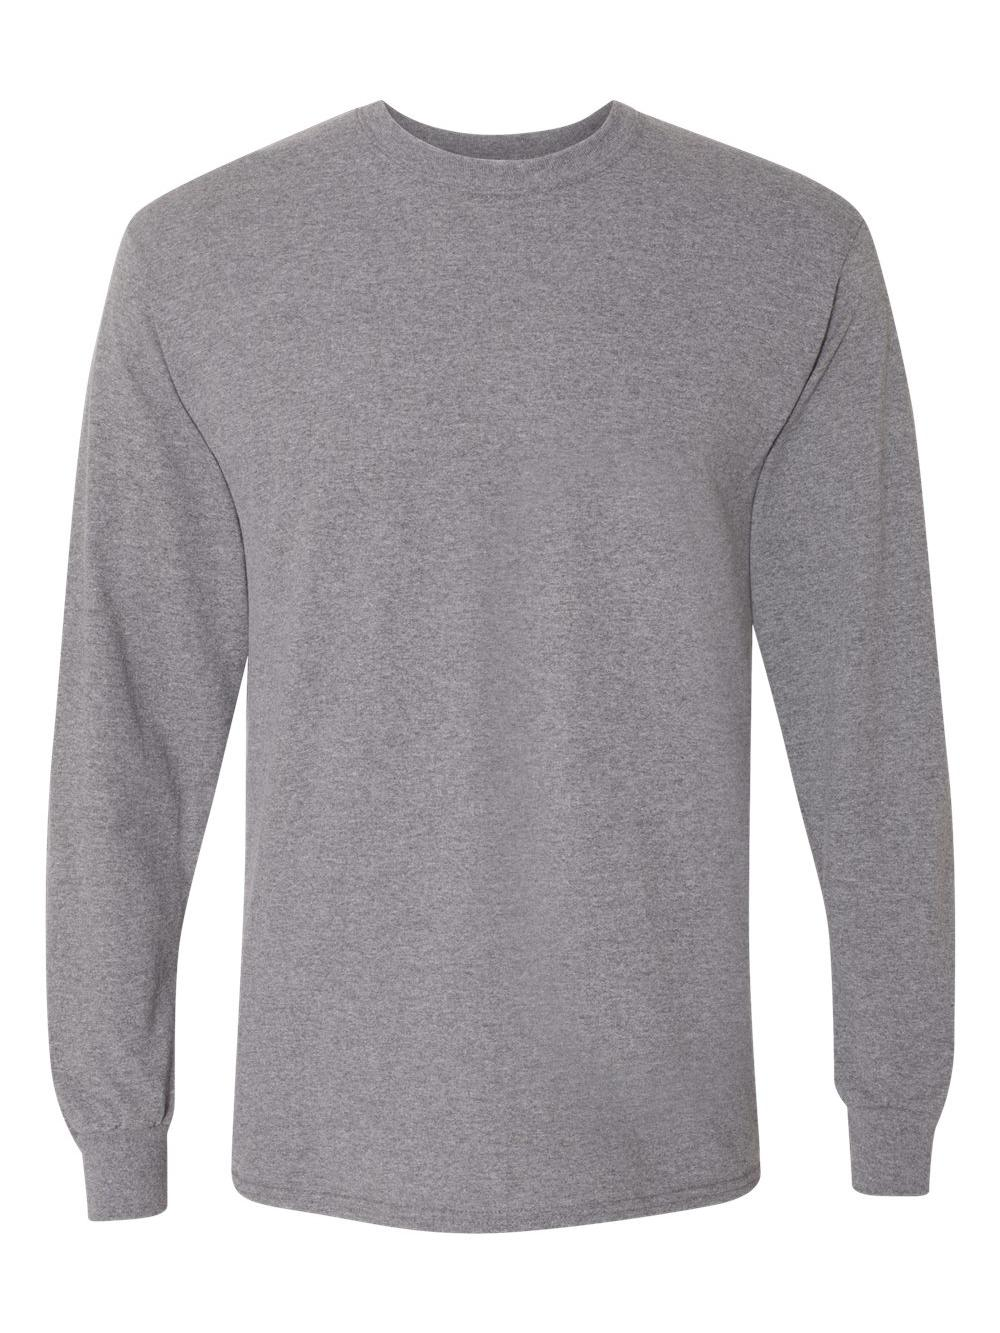 Gildan-DryBlend-50-50-Long-Sleeve-T-Shirt-8400 thumbnail 18